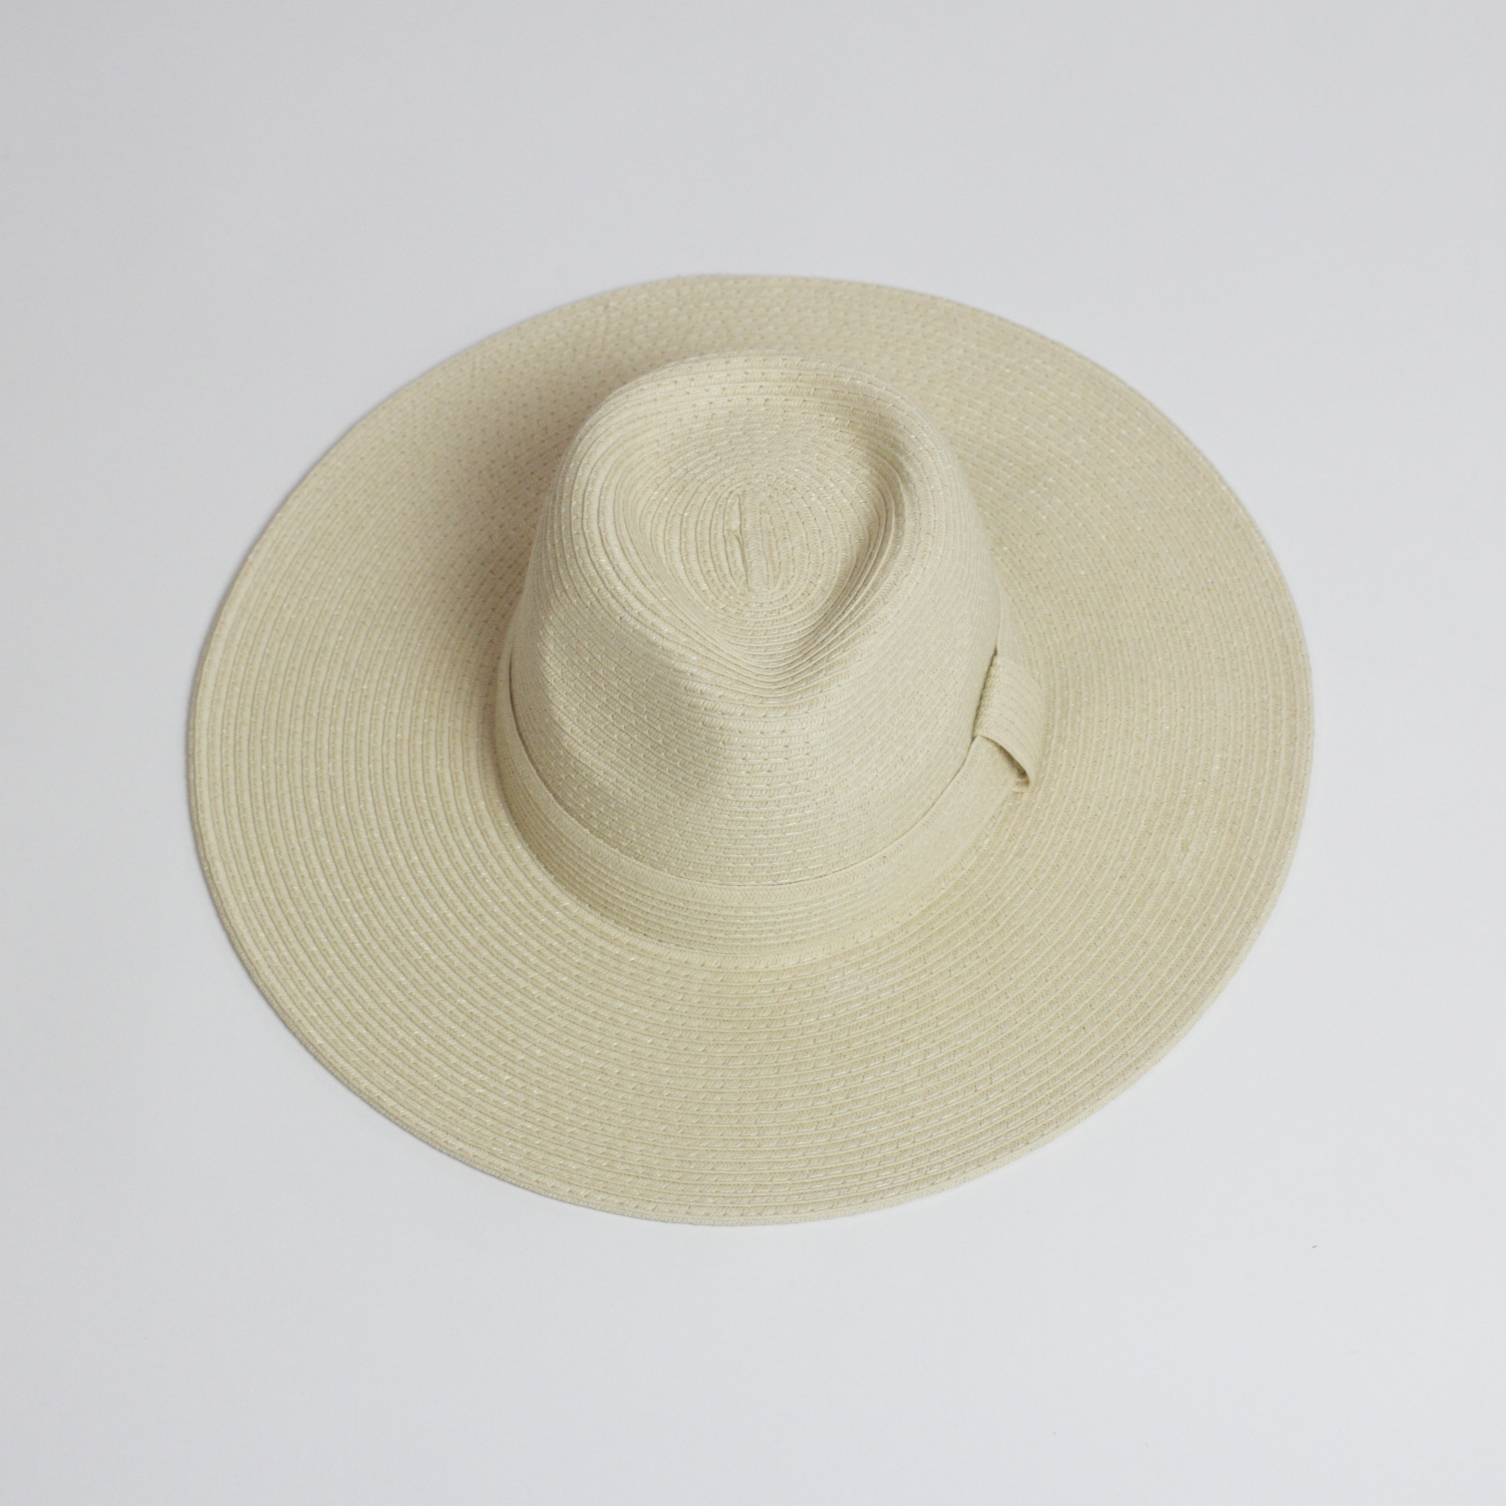 VINTAGE FLOPPY HAT (34-) has got me dreaming of the Spring days ahead.